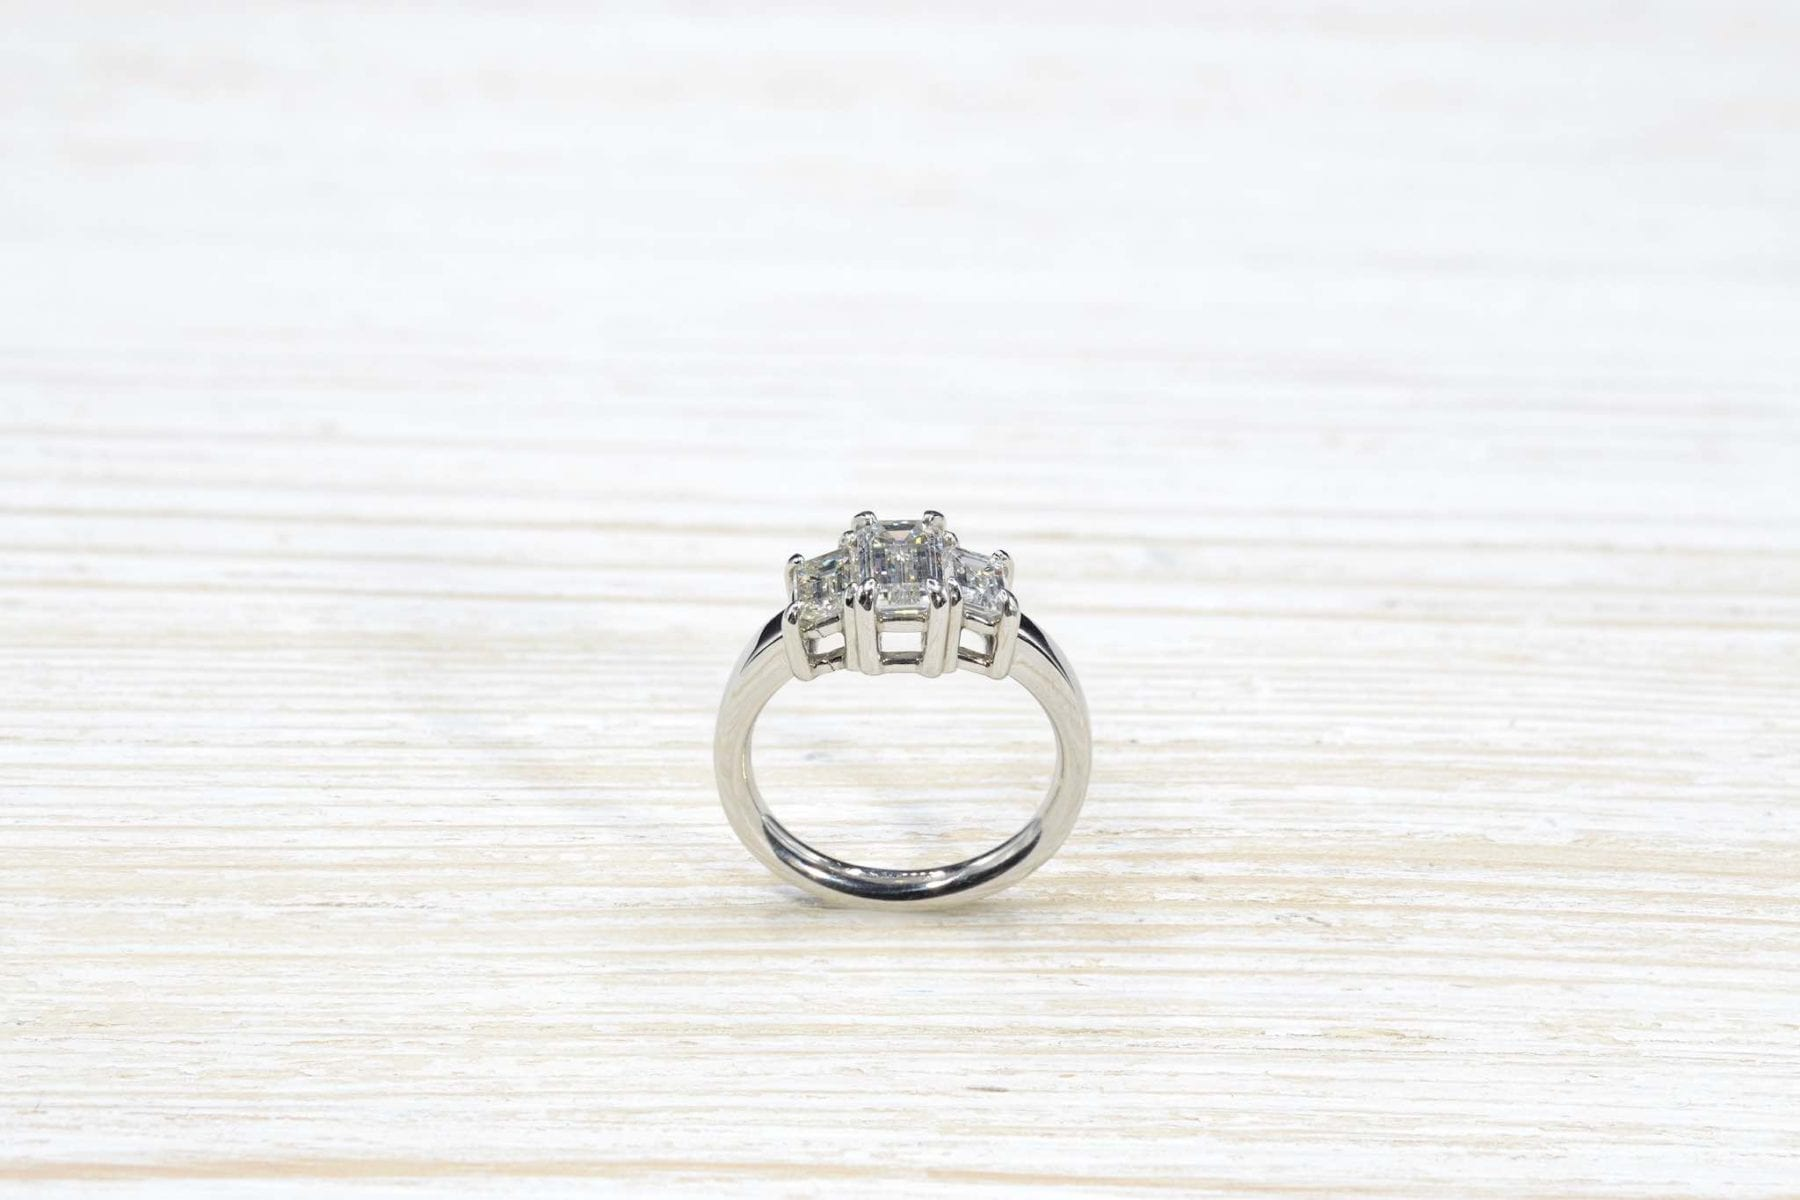 Vintage ring in white gold